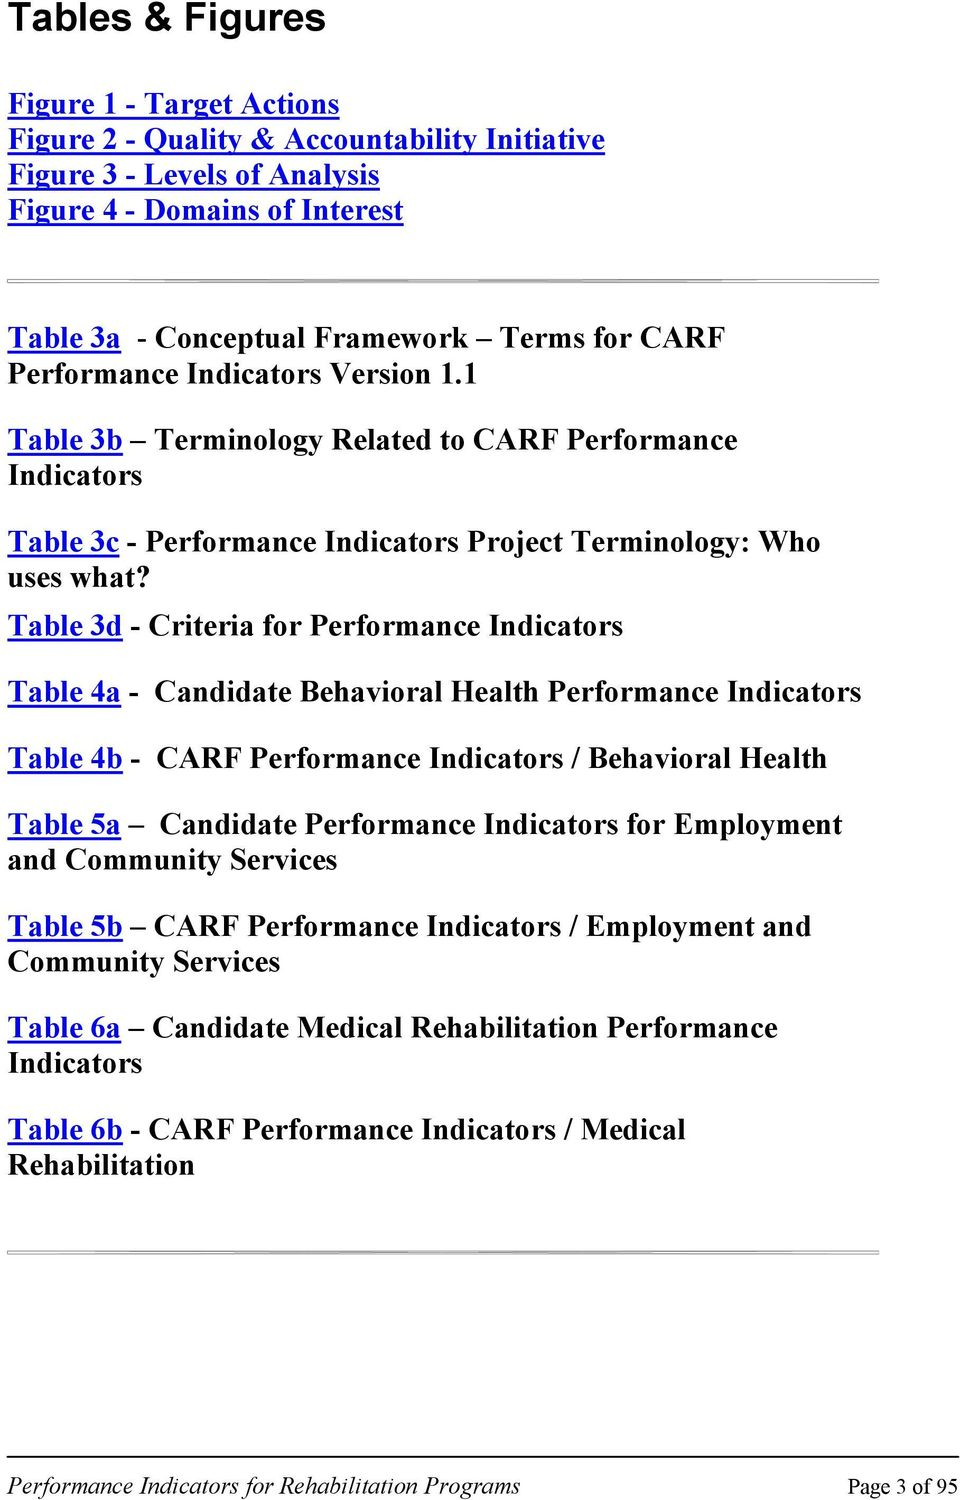 Table 3d - Criteria for Performance Indicators Table 4a - Candidate Behavioral Health Performance Indicators Table 4b - CARF Performance Indicators / Behavioral Health Table 5a Candidate Performance